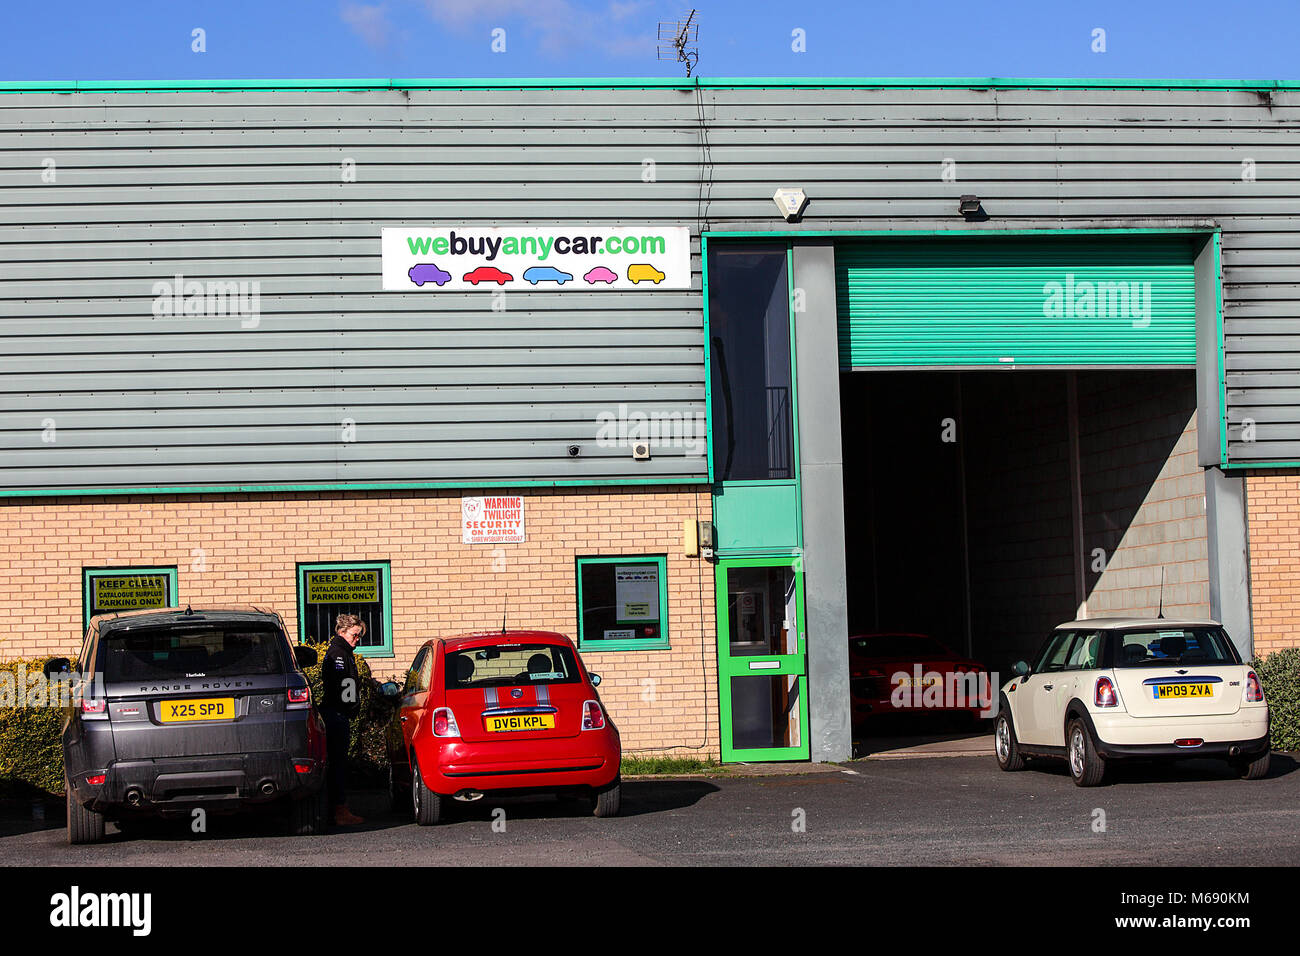 One of (7) images related to businesses in Battlefield Enterprise Park in Shrewsbury. We Buy Any Car .com at Battlefield - Stock Image